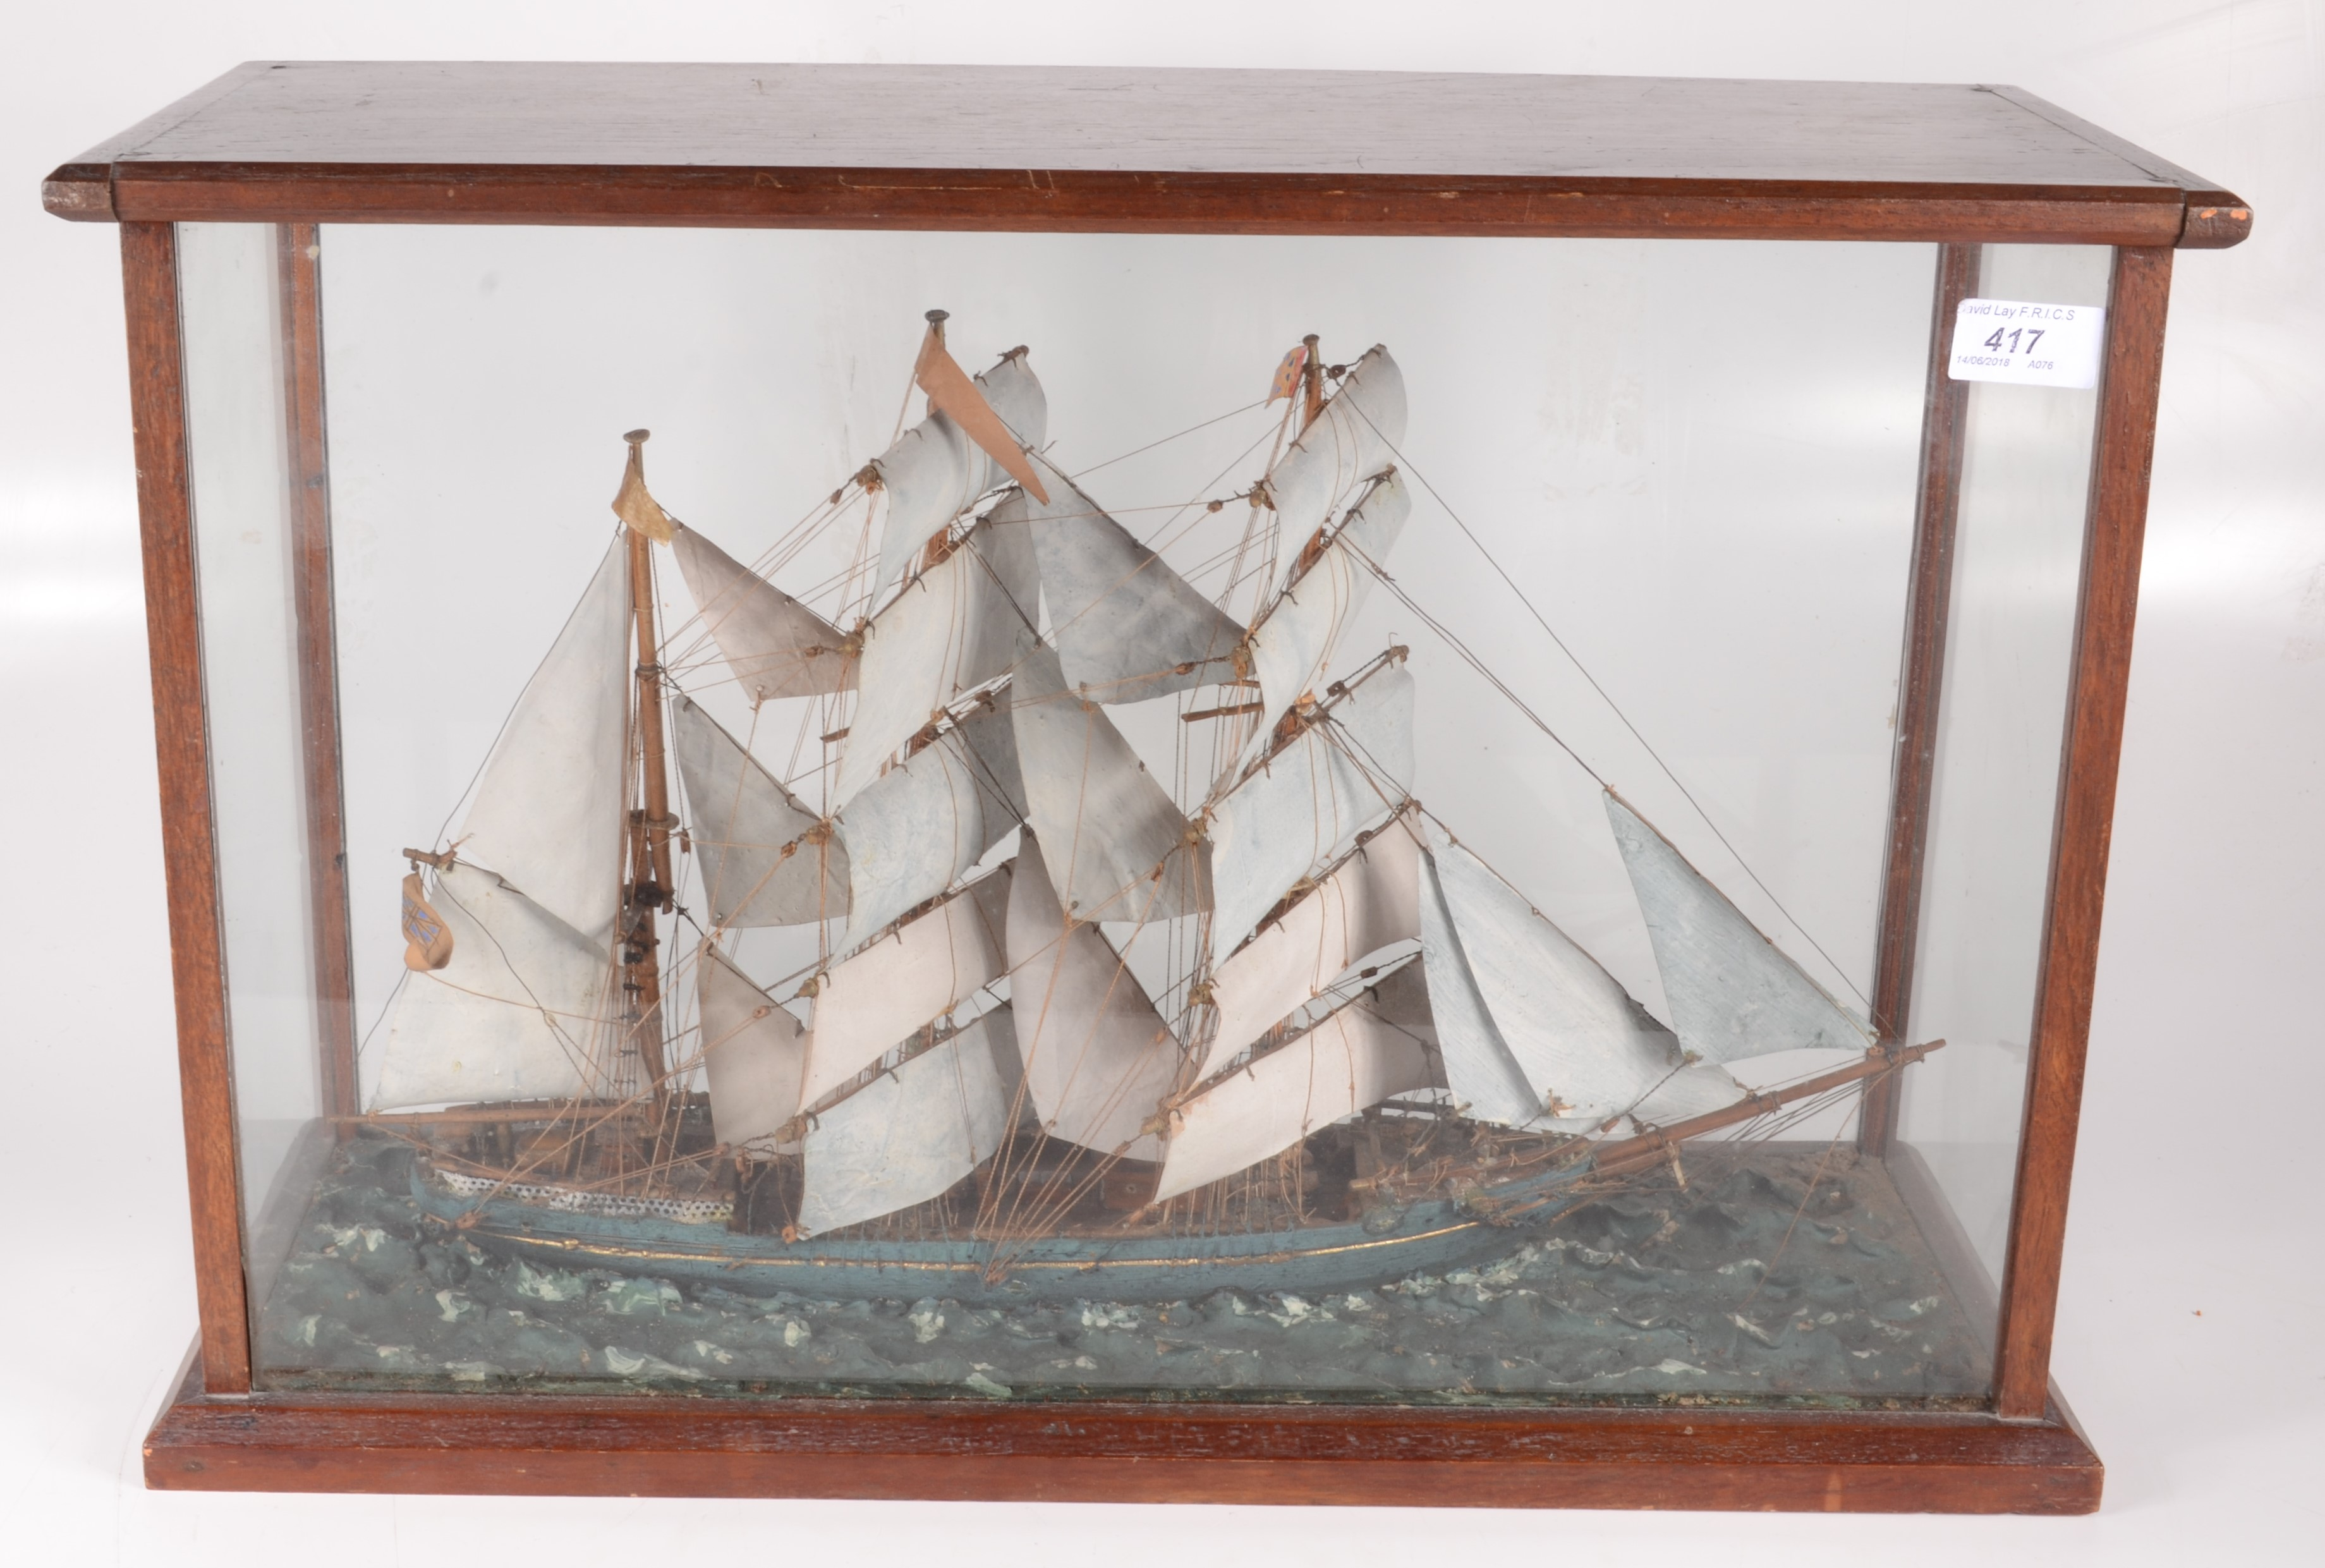 Lot 23 - A wooden model of a sailing ship, early 20th century, in a glazed mahogany case, height 37.